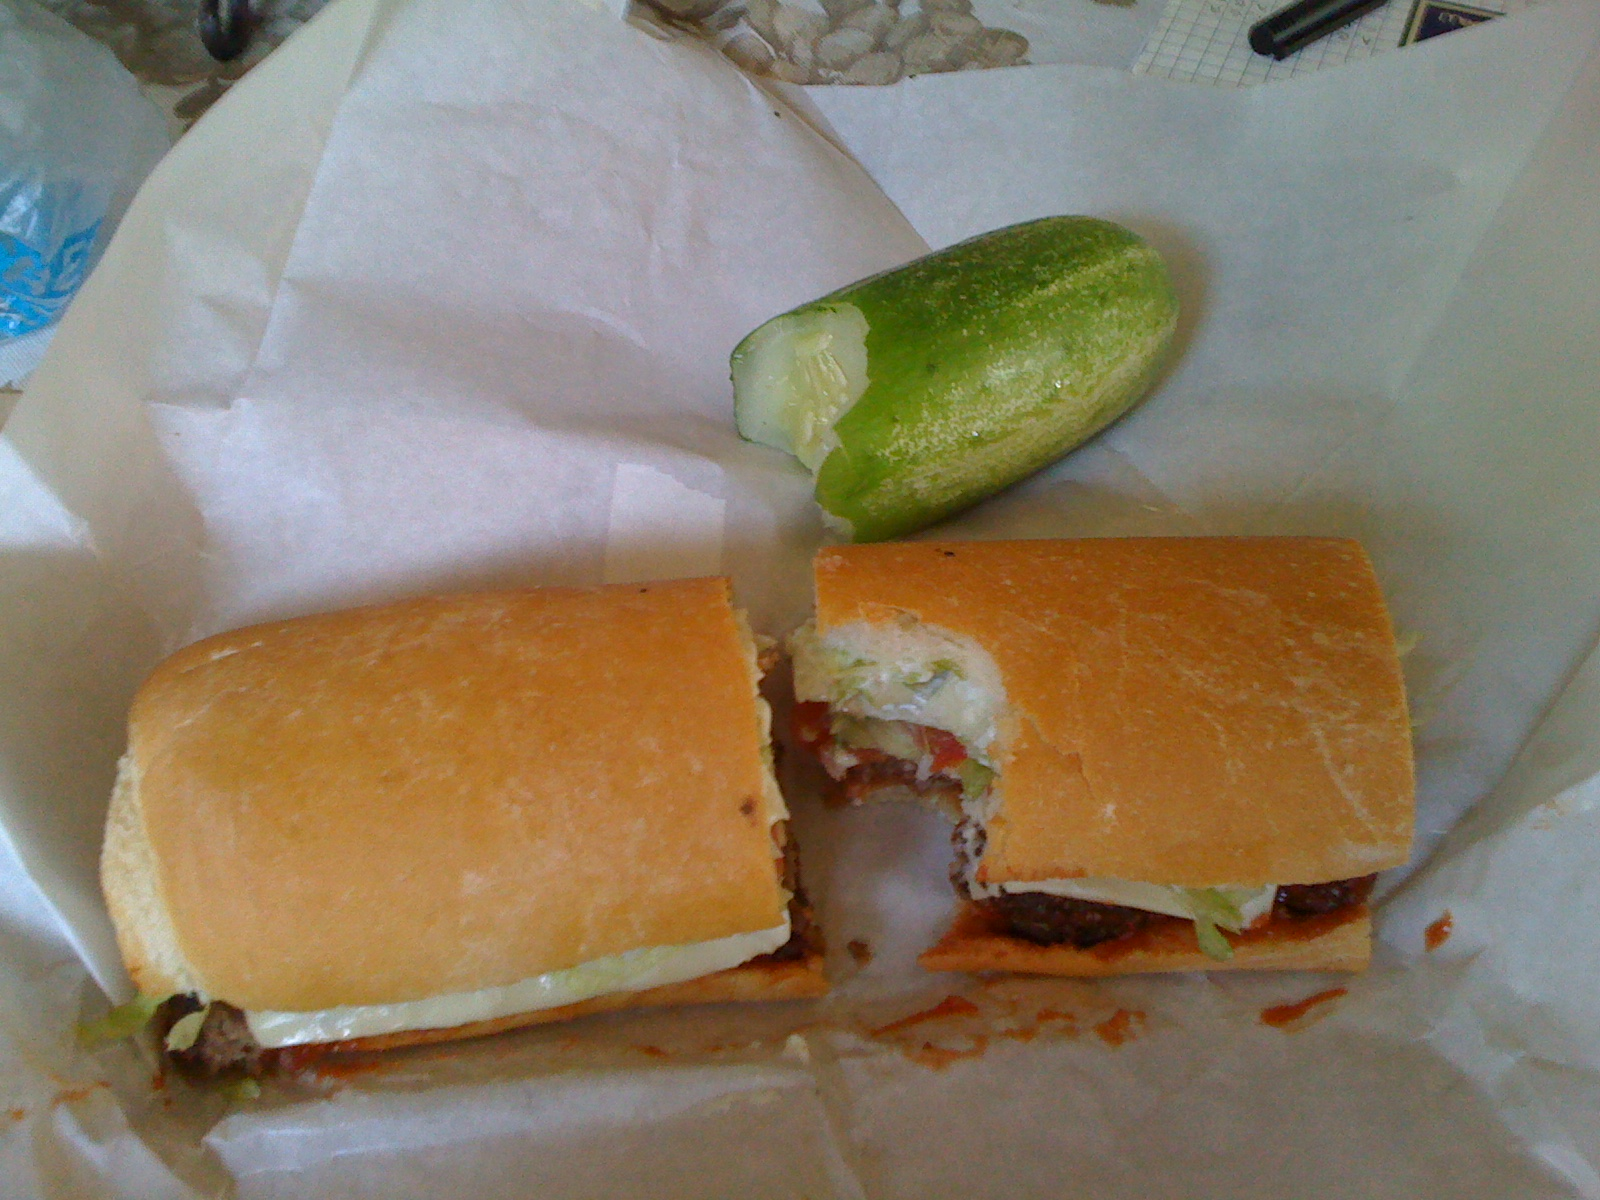 Elsa's Bushel and Peck Deli :: Hamburger on french bread with half sour pickle. Awesome.